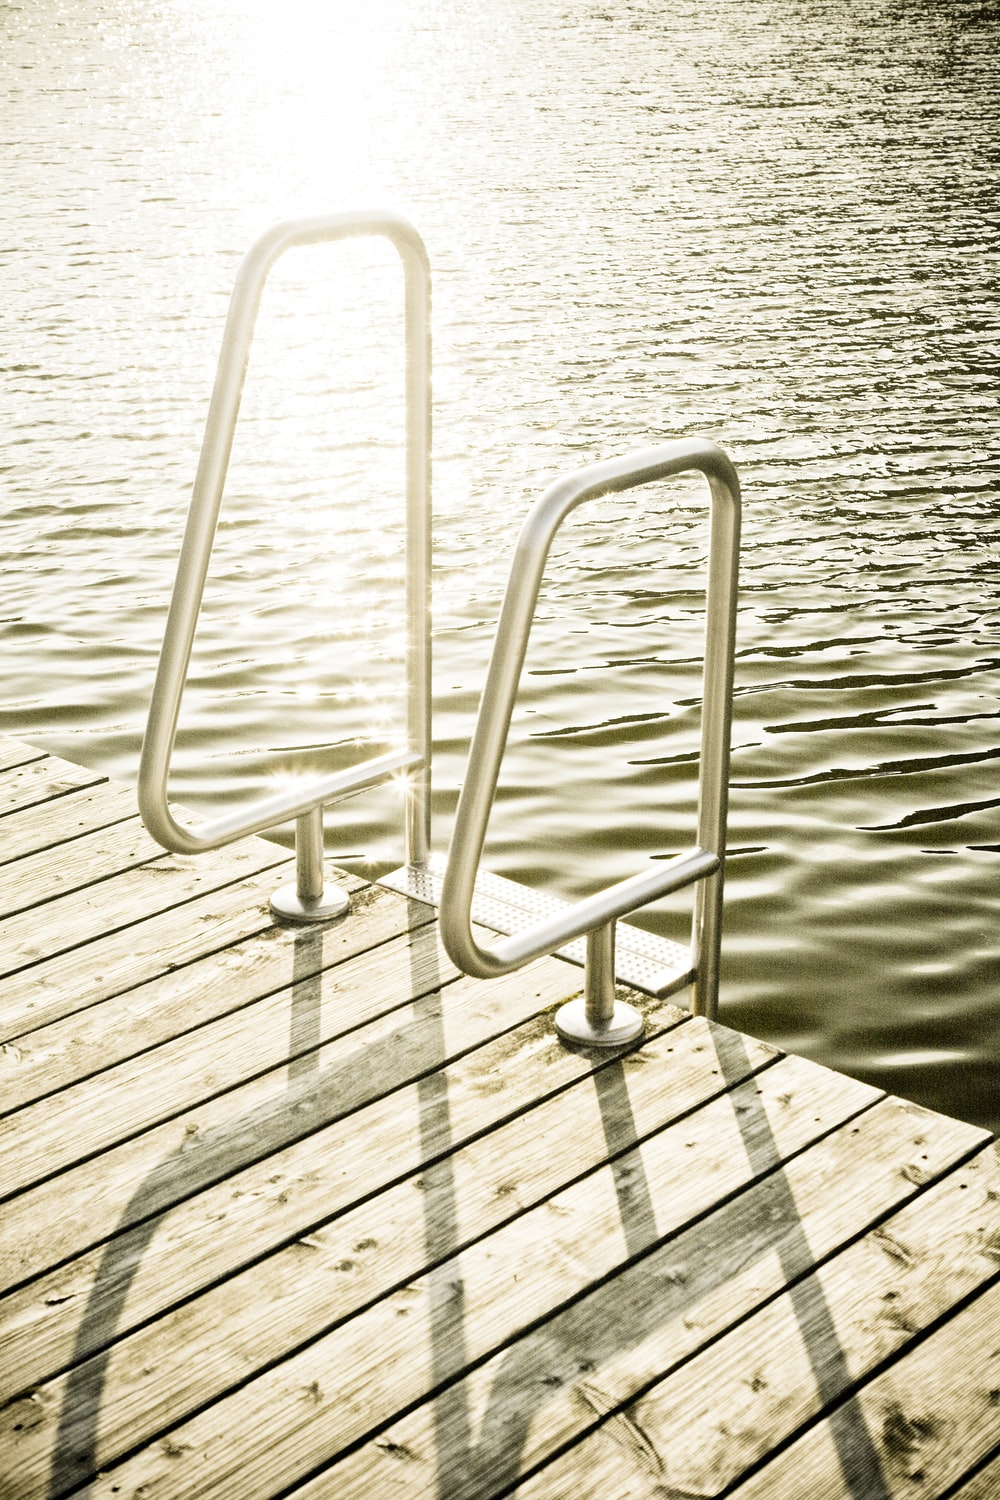 silver body of water ladder